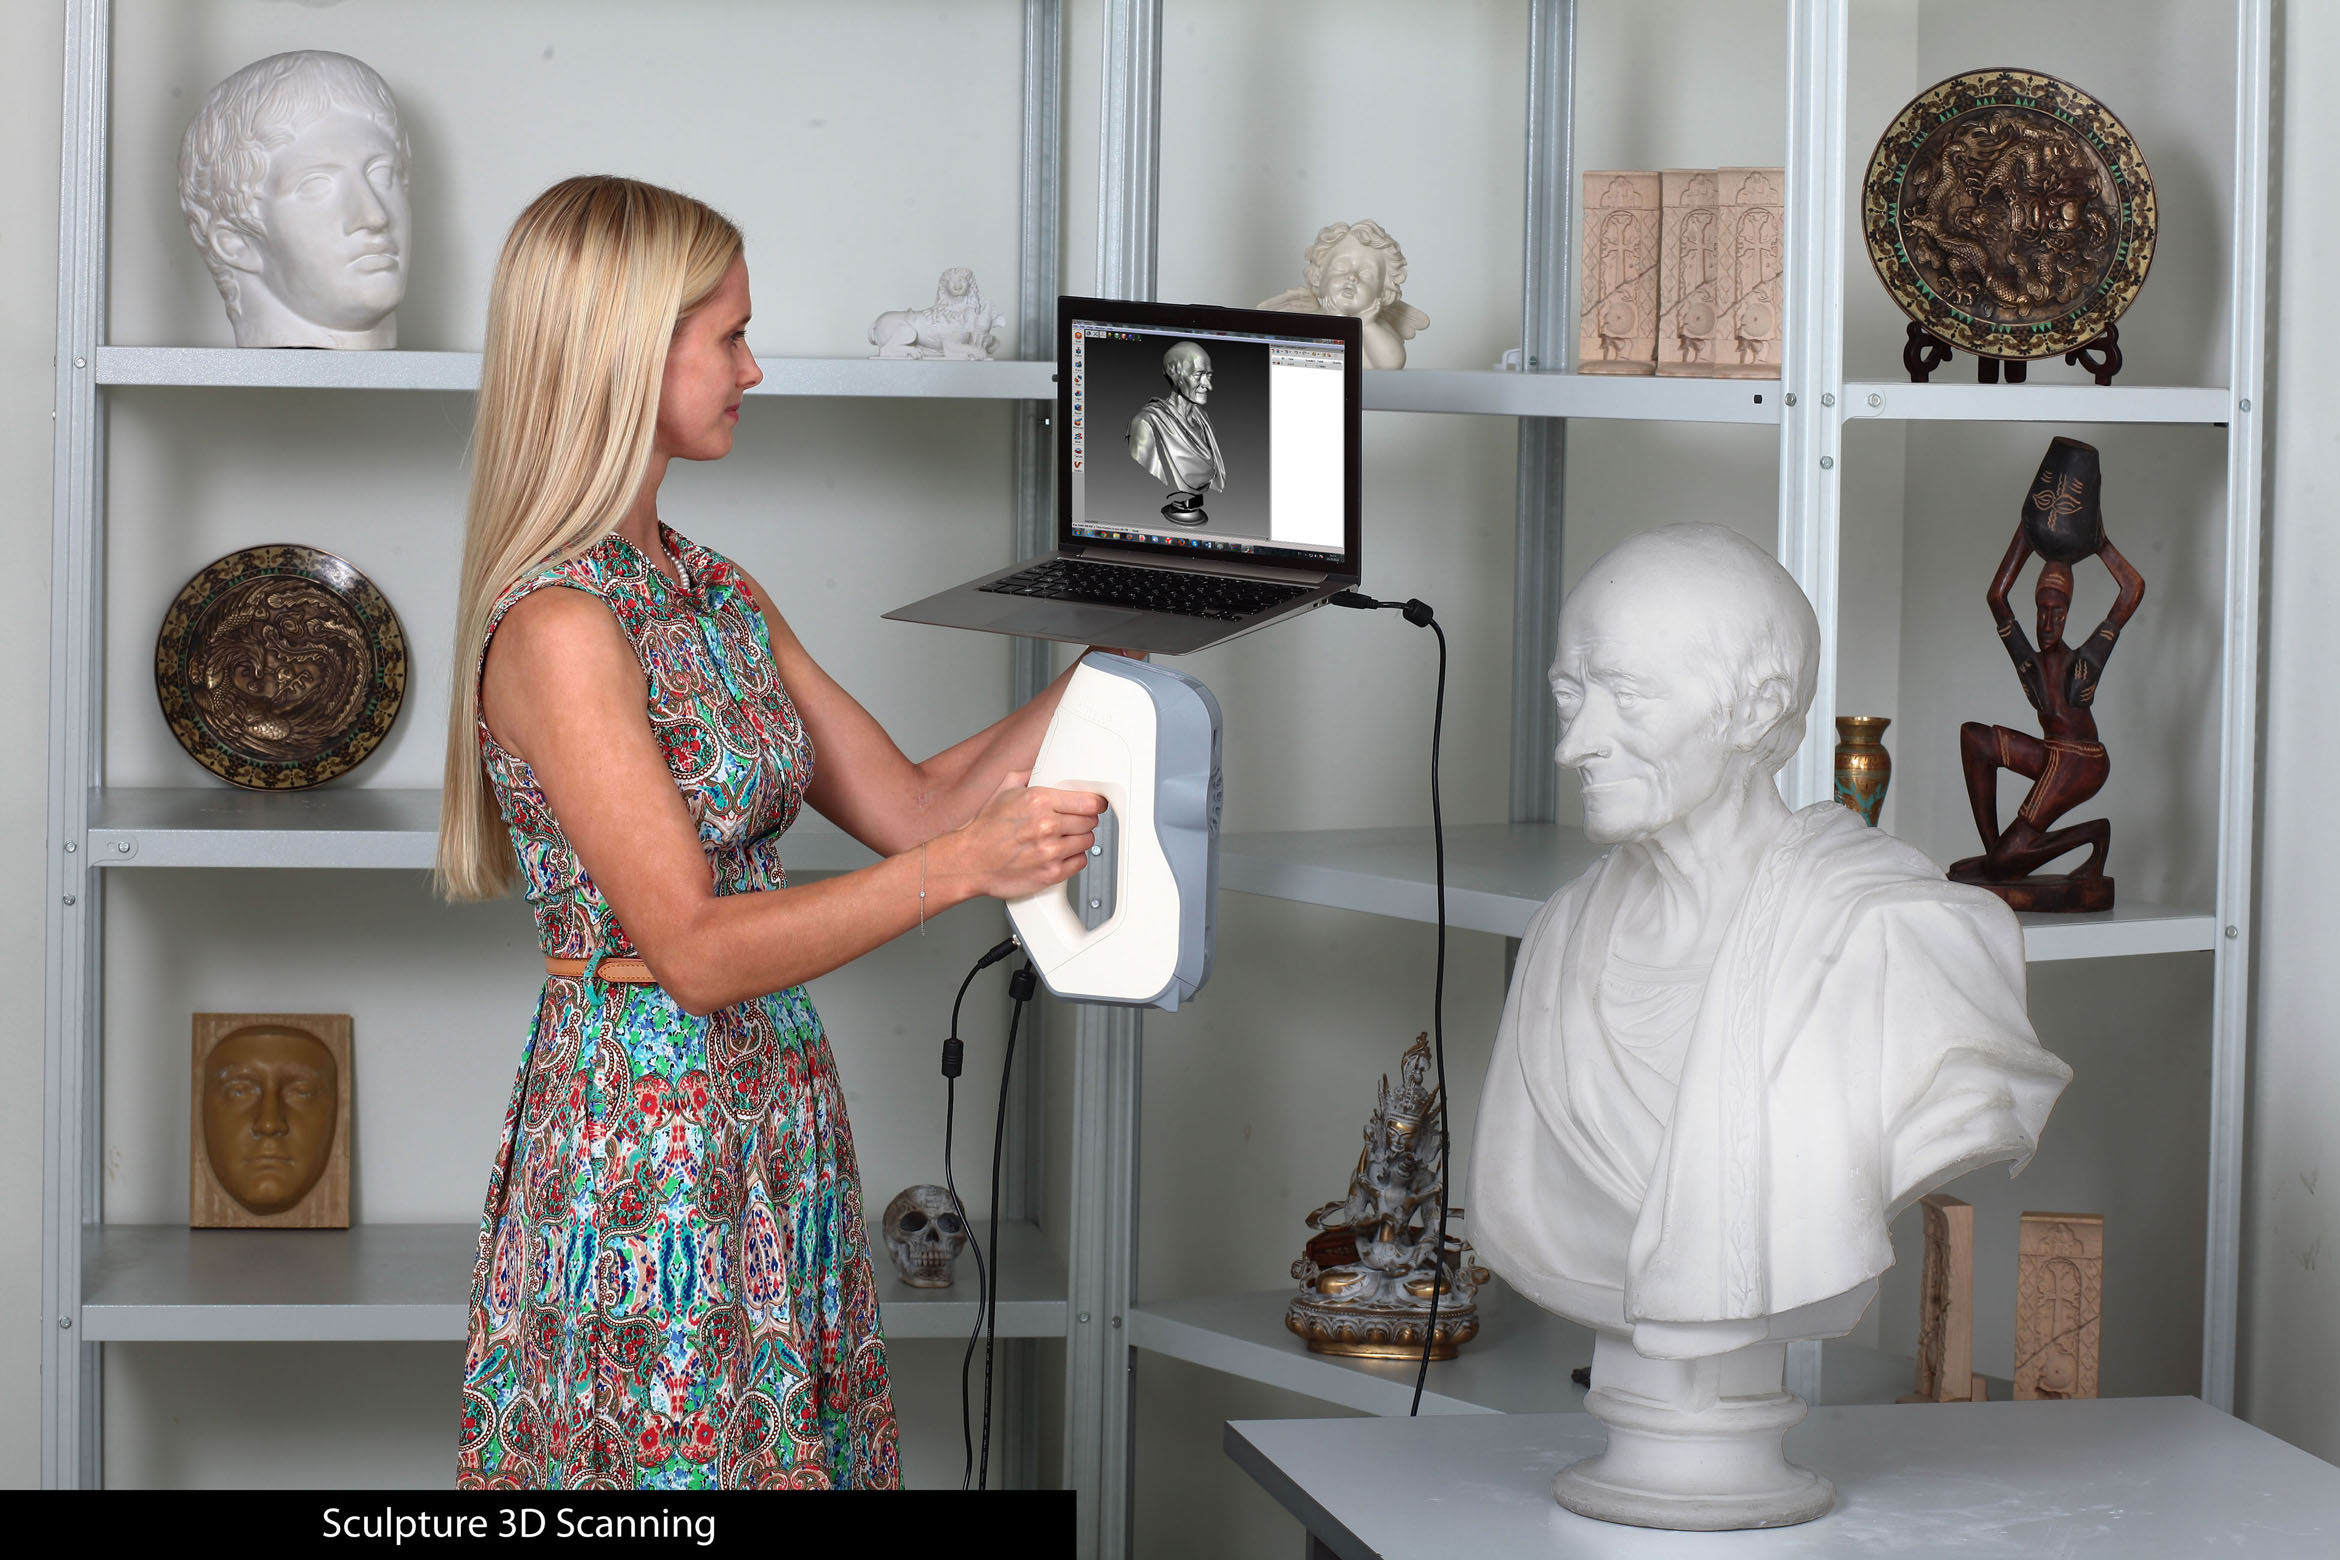 Sculpture 3D Scanning